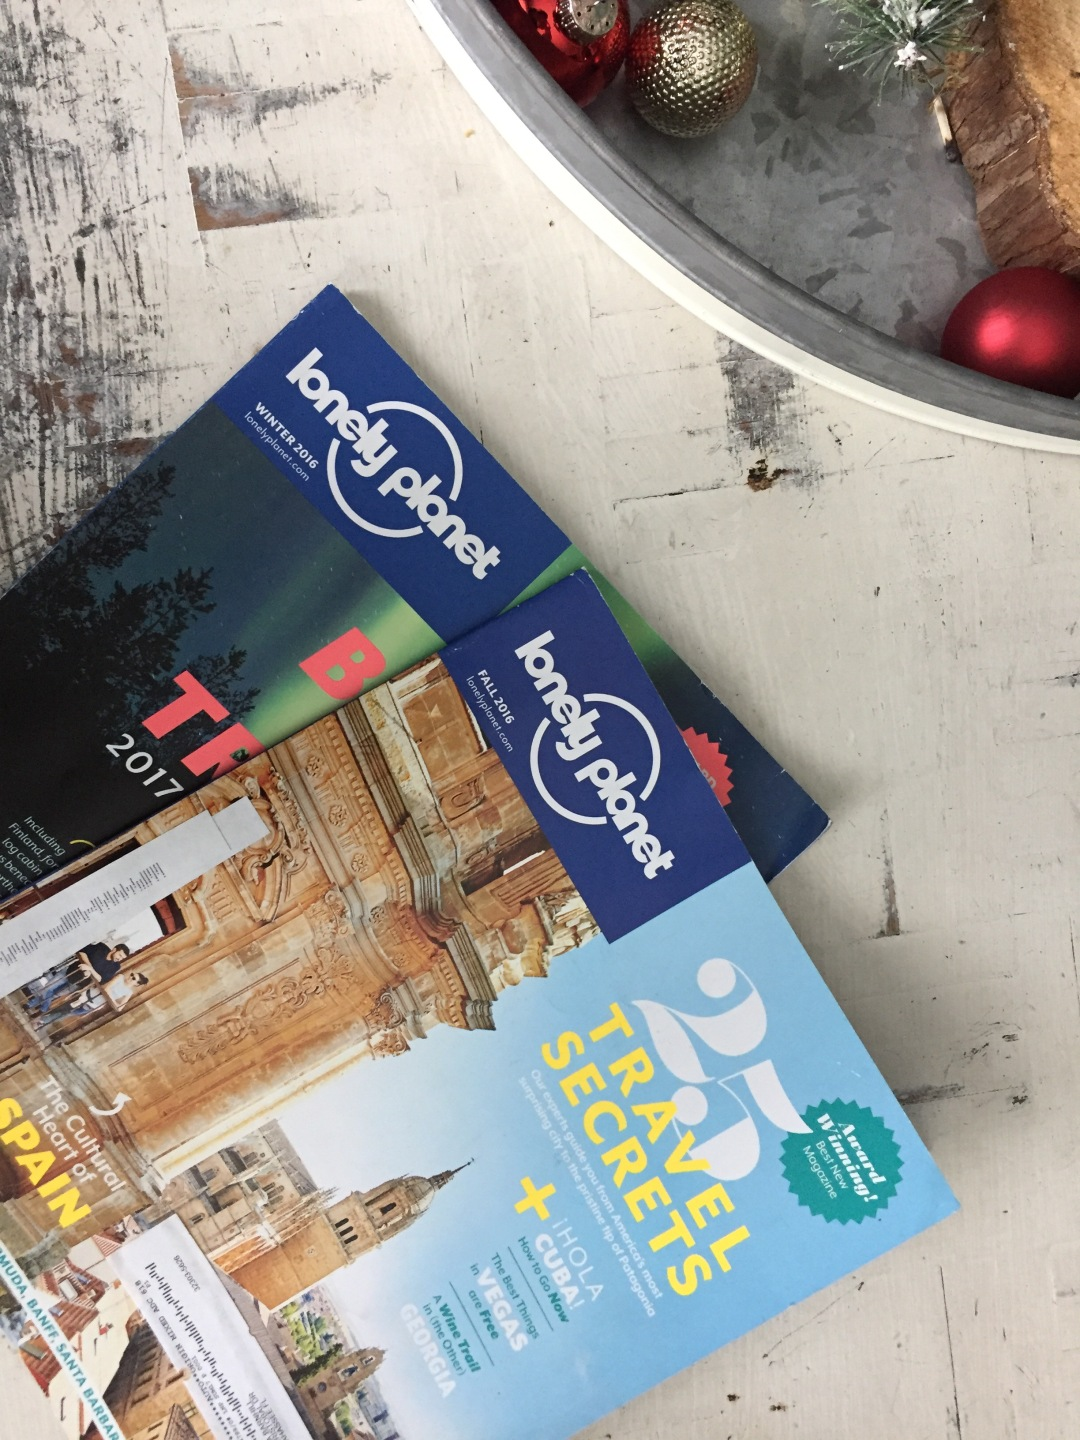 lonely planet magazine holiday gift idea for travelers